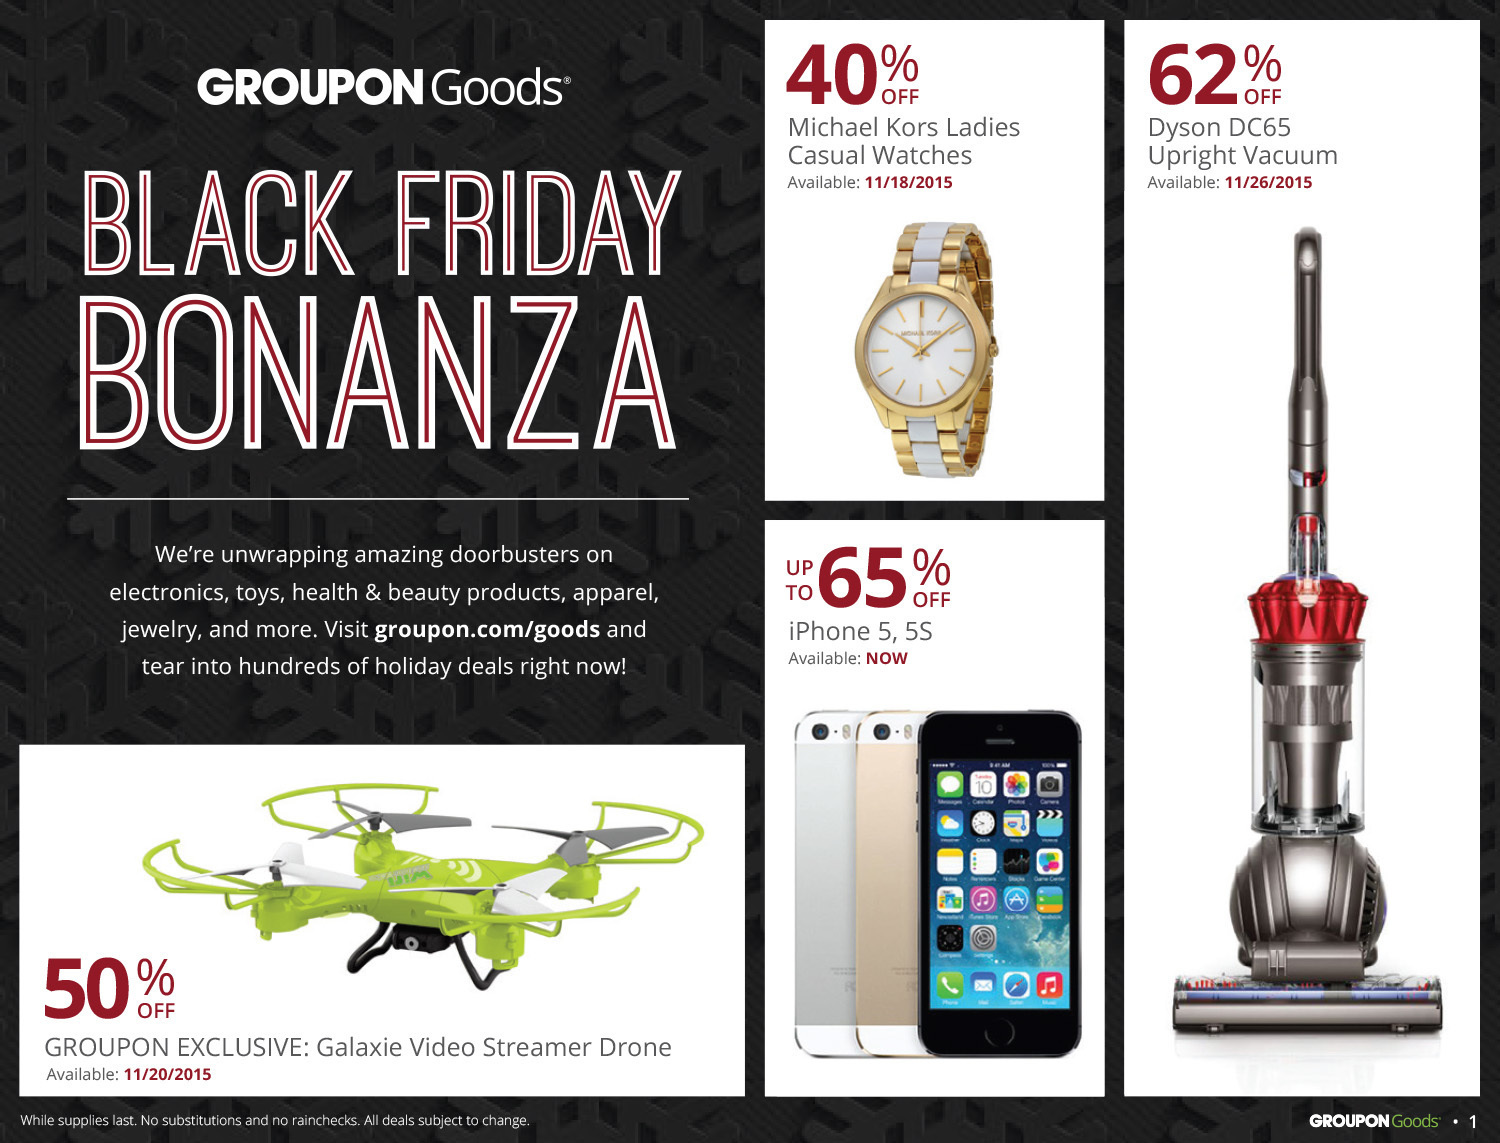 goods_black-friday-circular-15_03_dm.indd